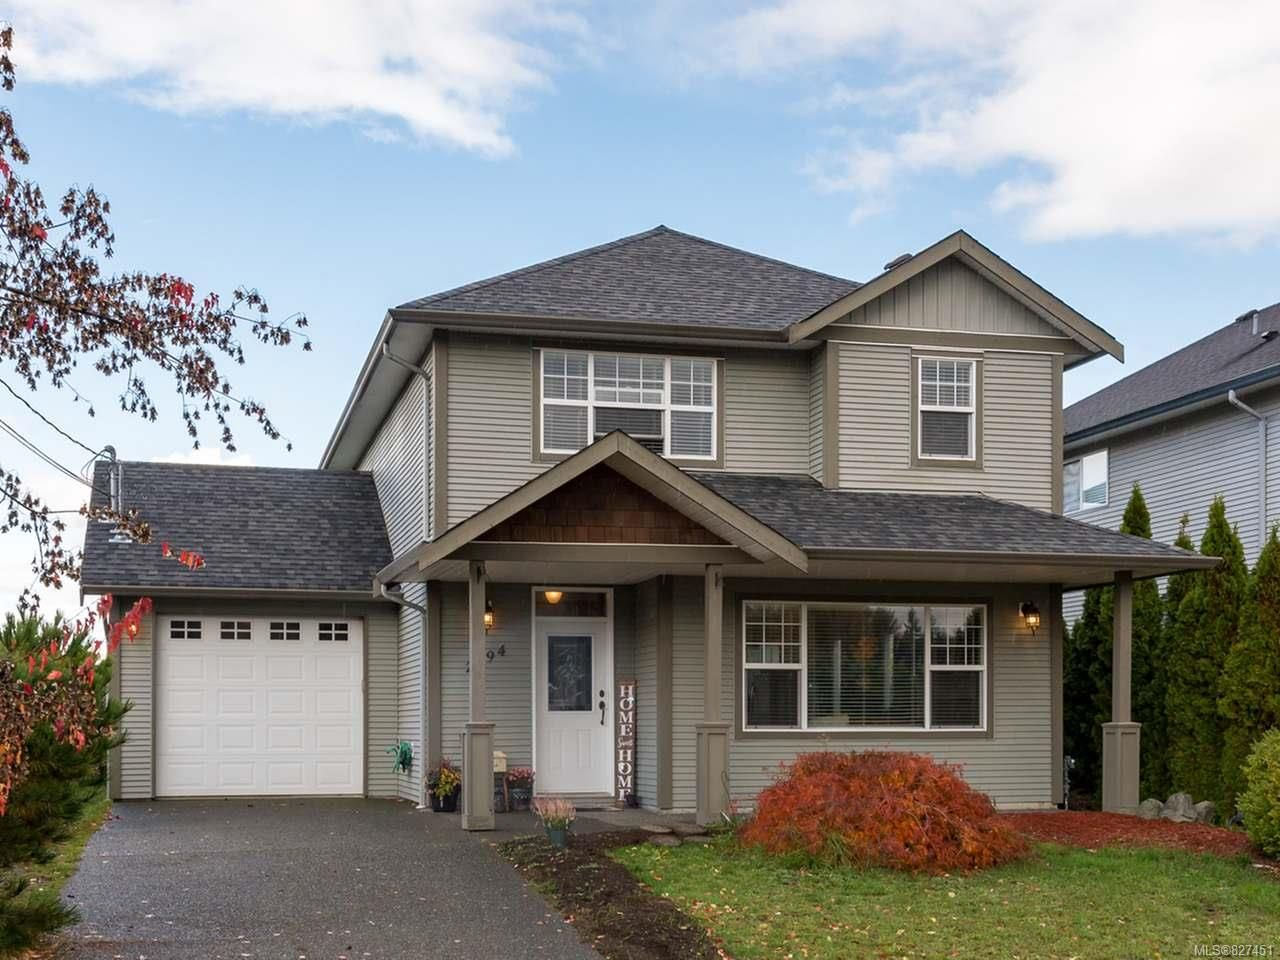 Main Photo: 2894 Ulverston Ave in CUMBERLAND: CV Cumberland House for sale (Comox Valley)  : MLS®# 827451